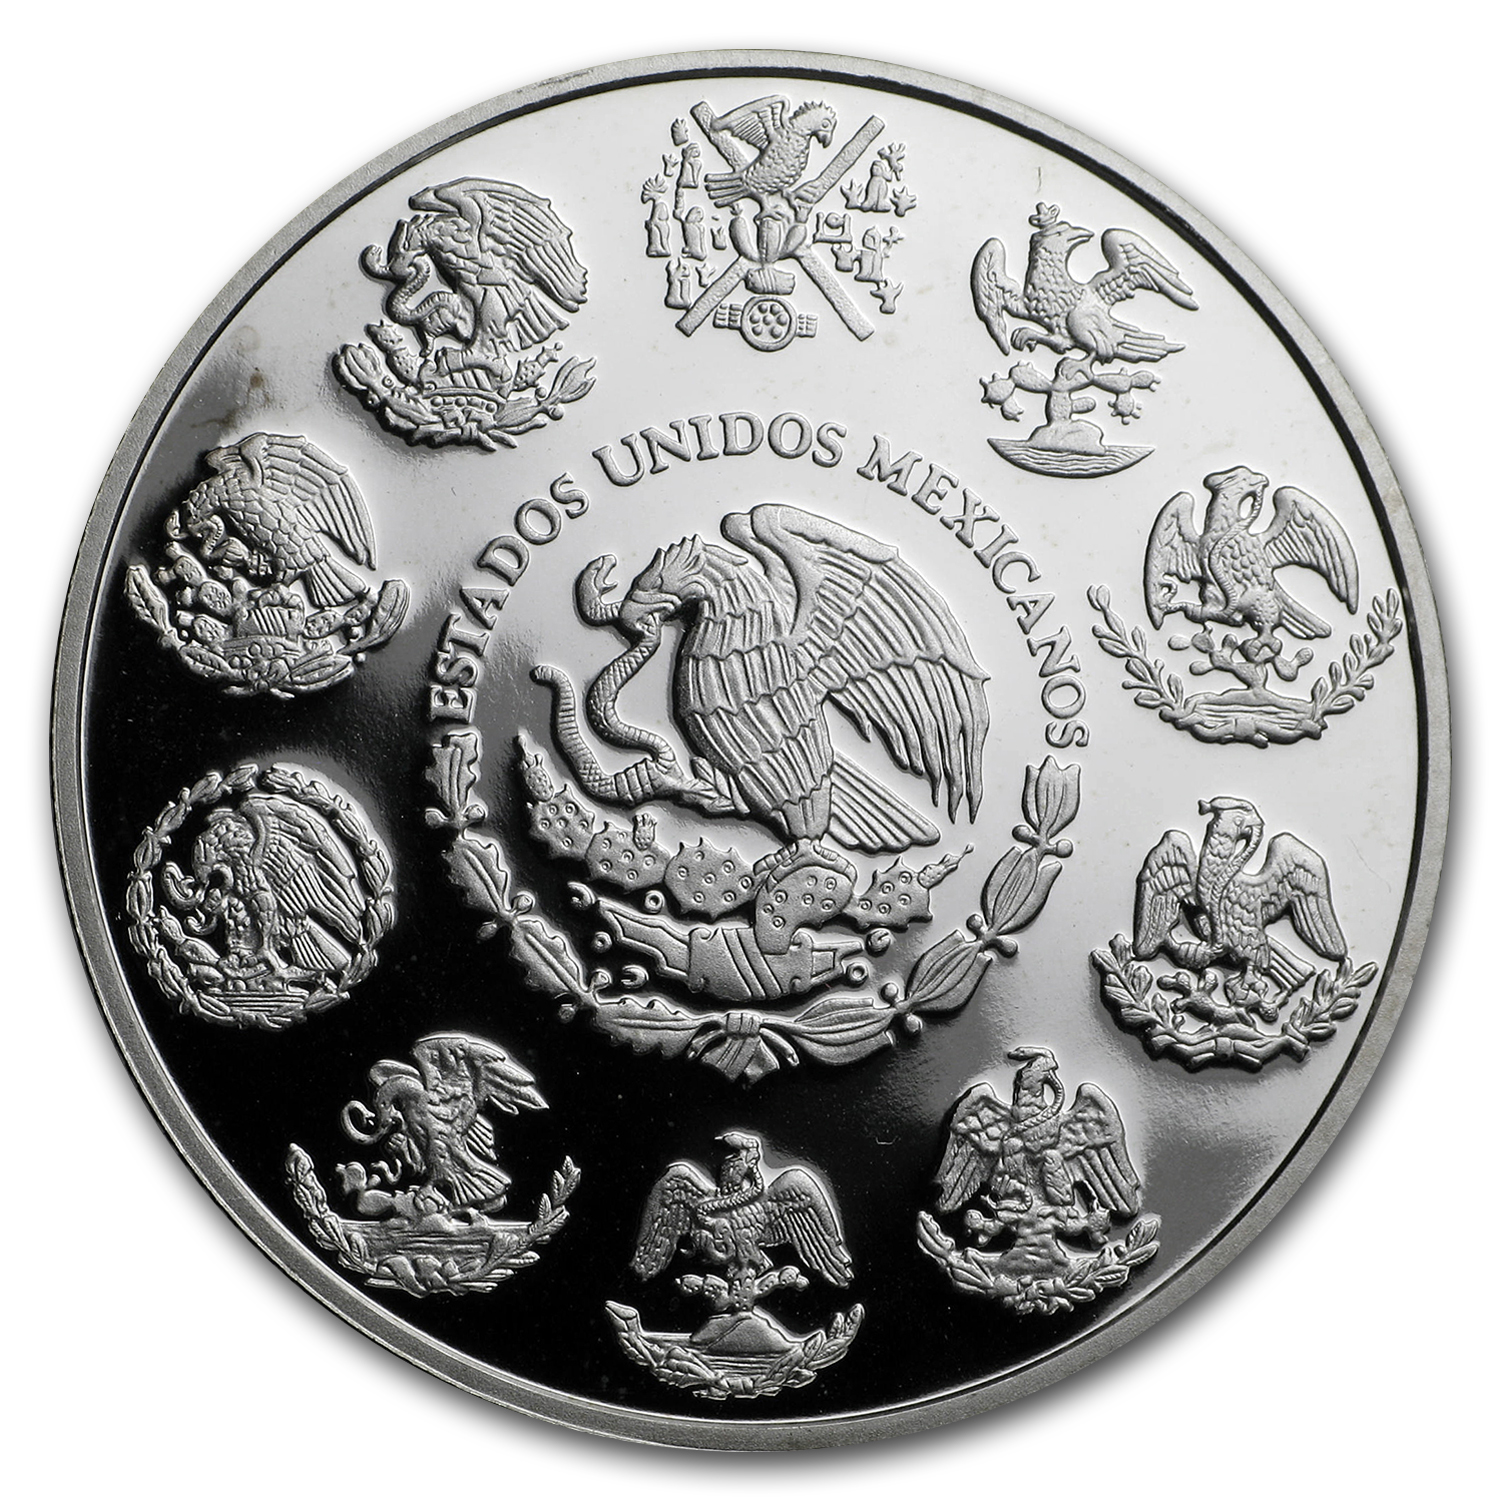 2012 1 oz Silver Mexican Libertad - Proof (In Capsule)